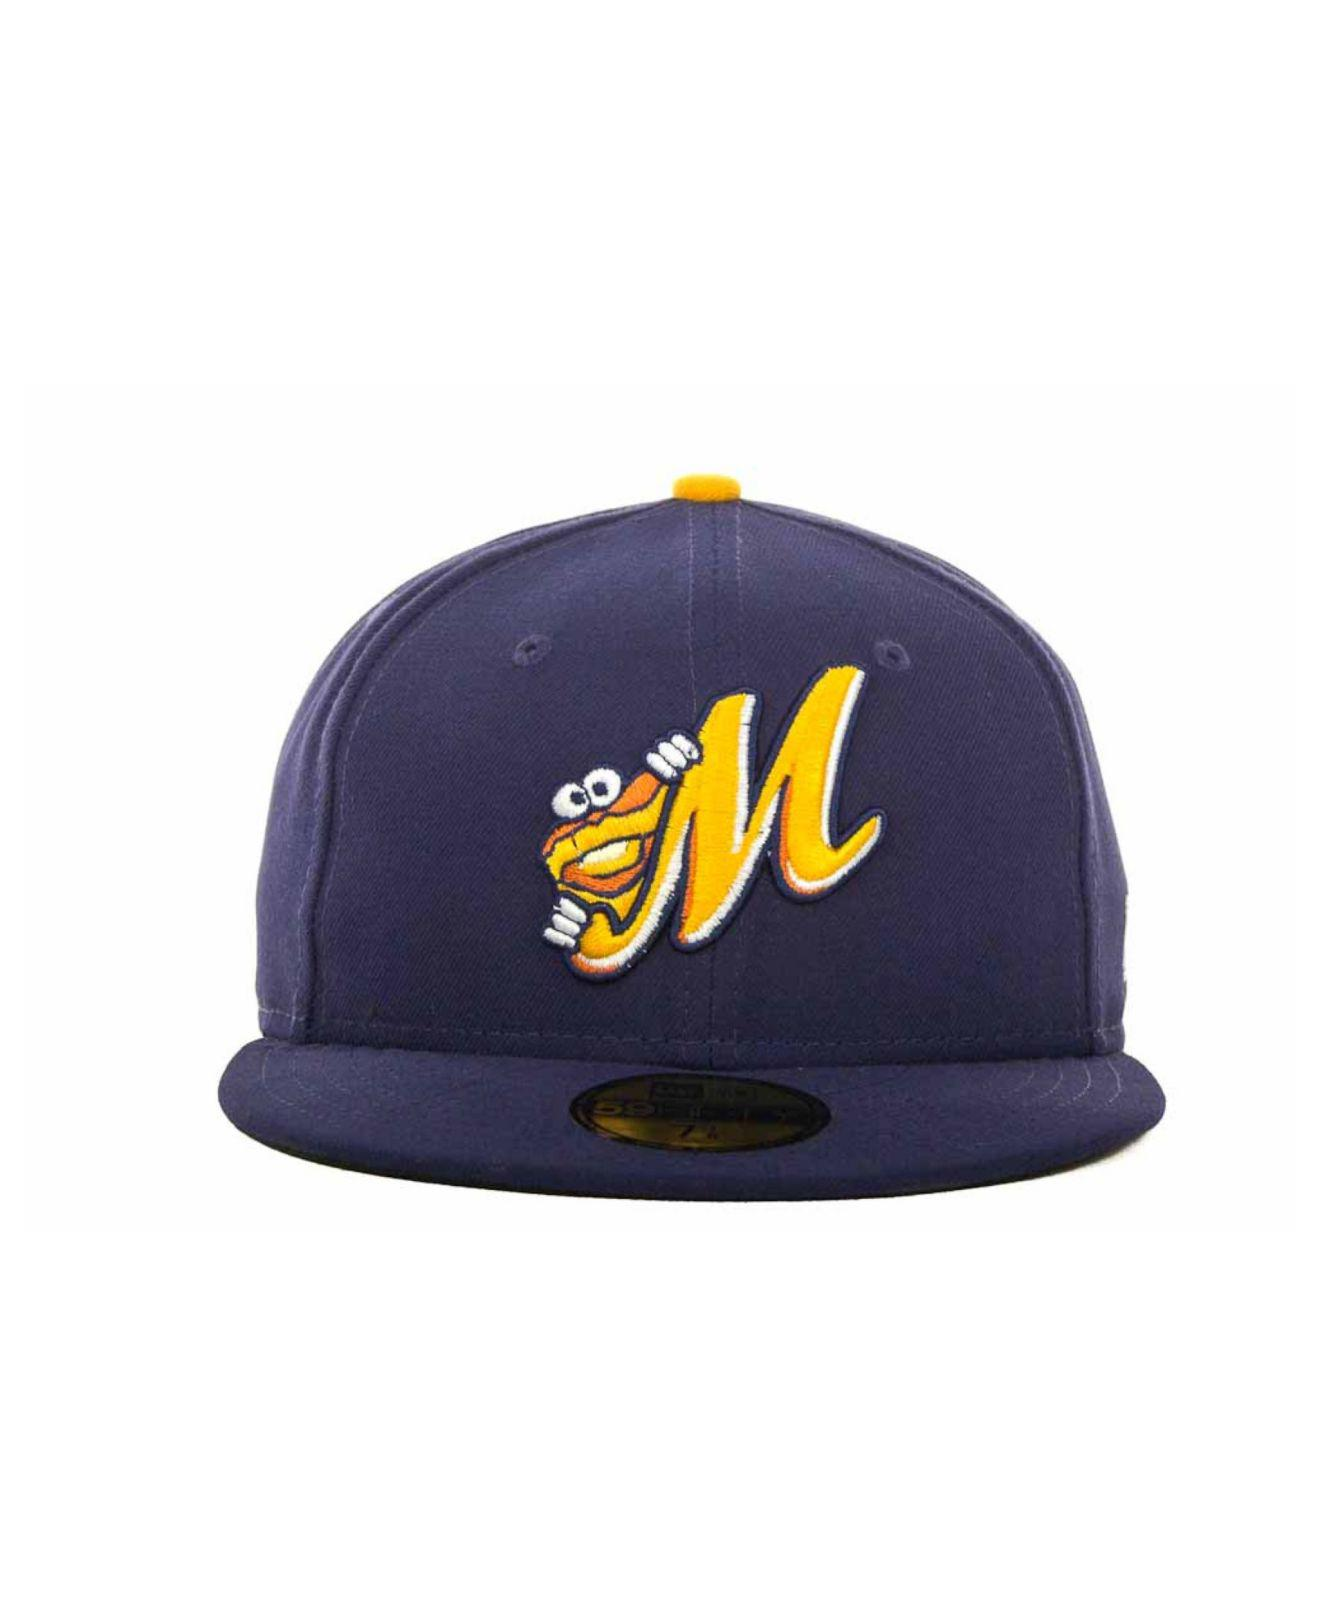 6c59ba1a9b5 Lyst - KTZ Montgomery Biscuits Milb 59fifty Cap in Blue for Men